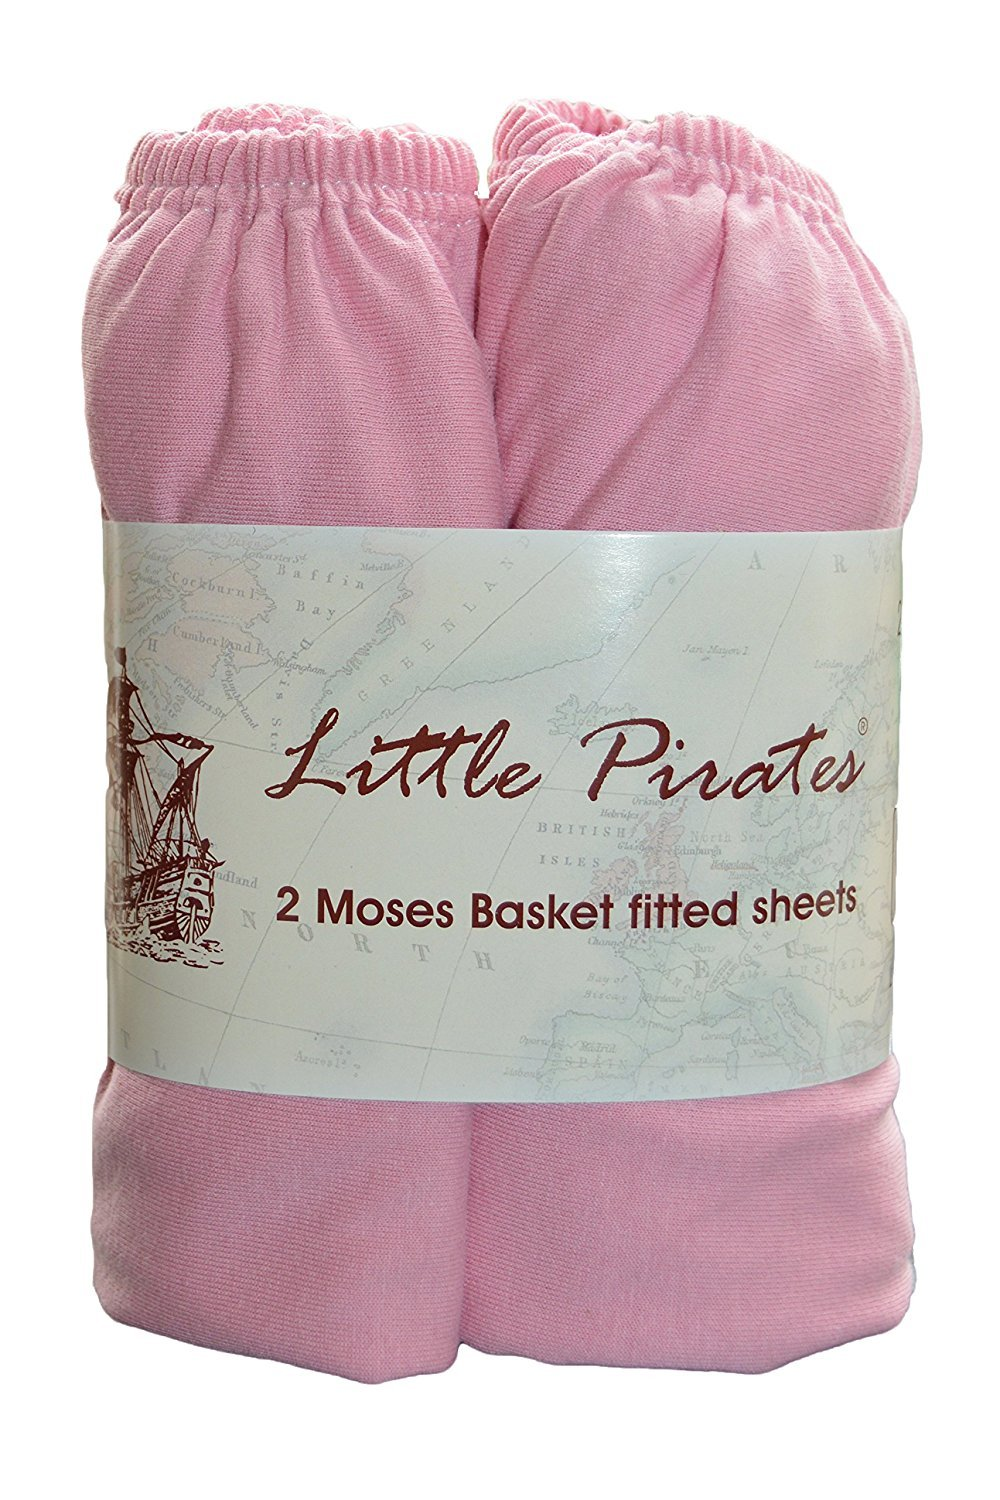 2 x Baby Pram/Crib/ Moses Basket Jersey Fitted Sheet 100% Cotton Pink 30x75cm Little Pirates